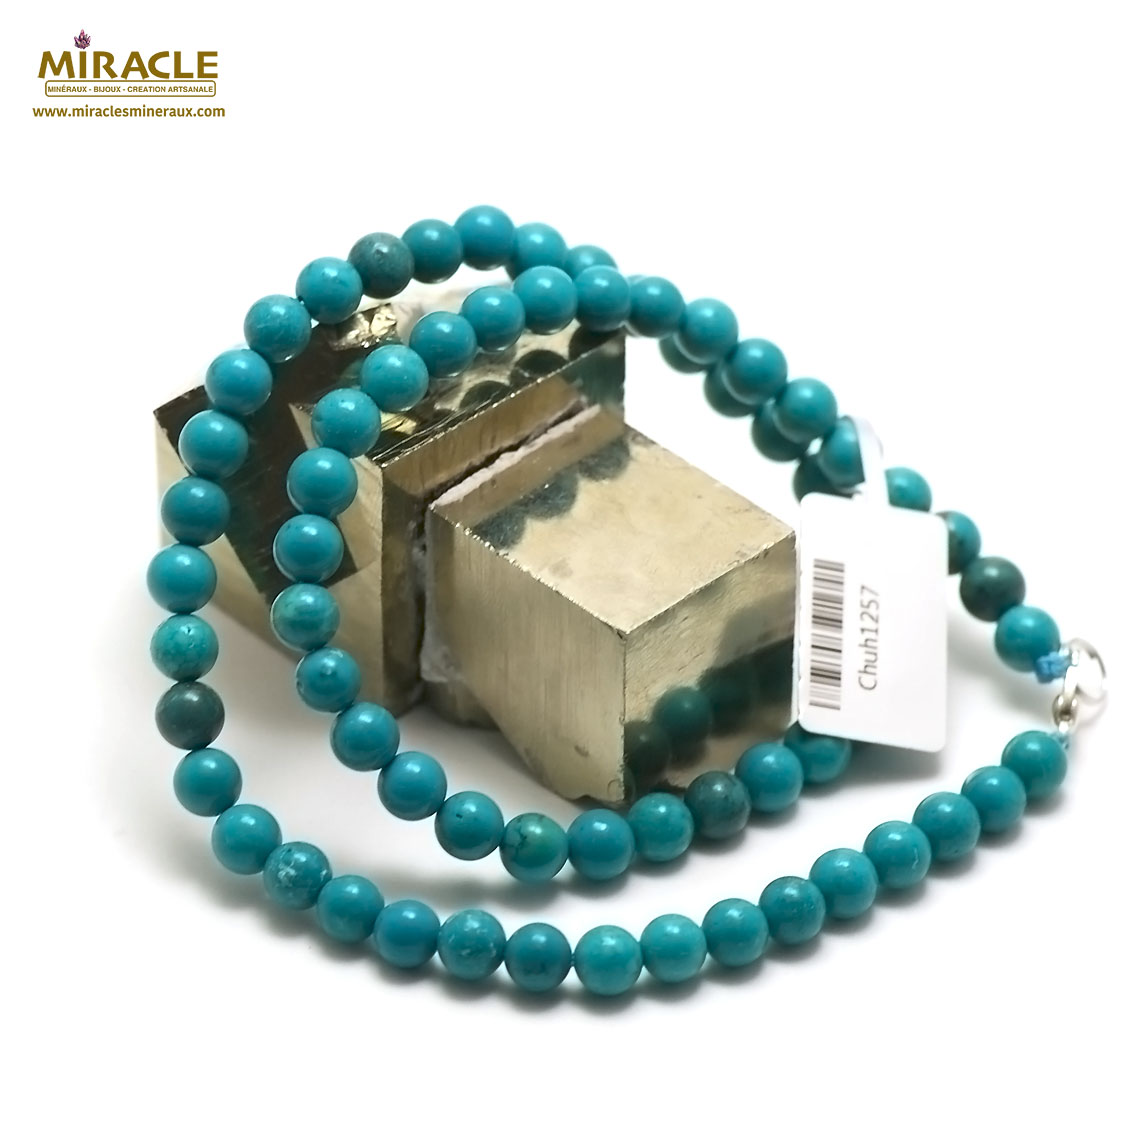 collier turquoise  perle ronde 6 mm, pierre naturelle